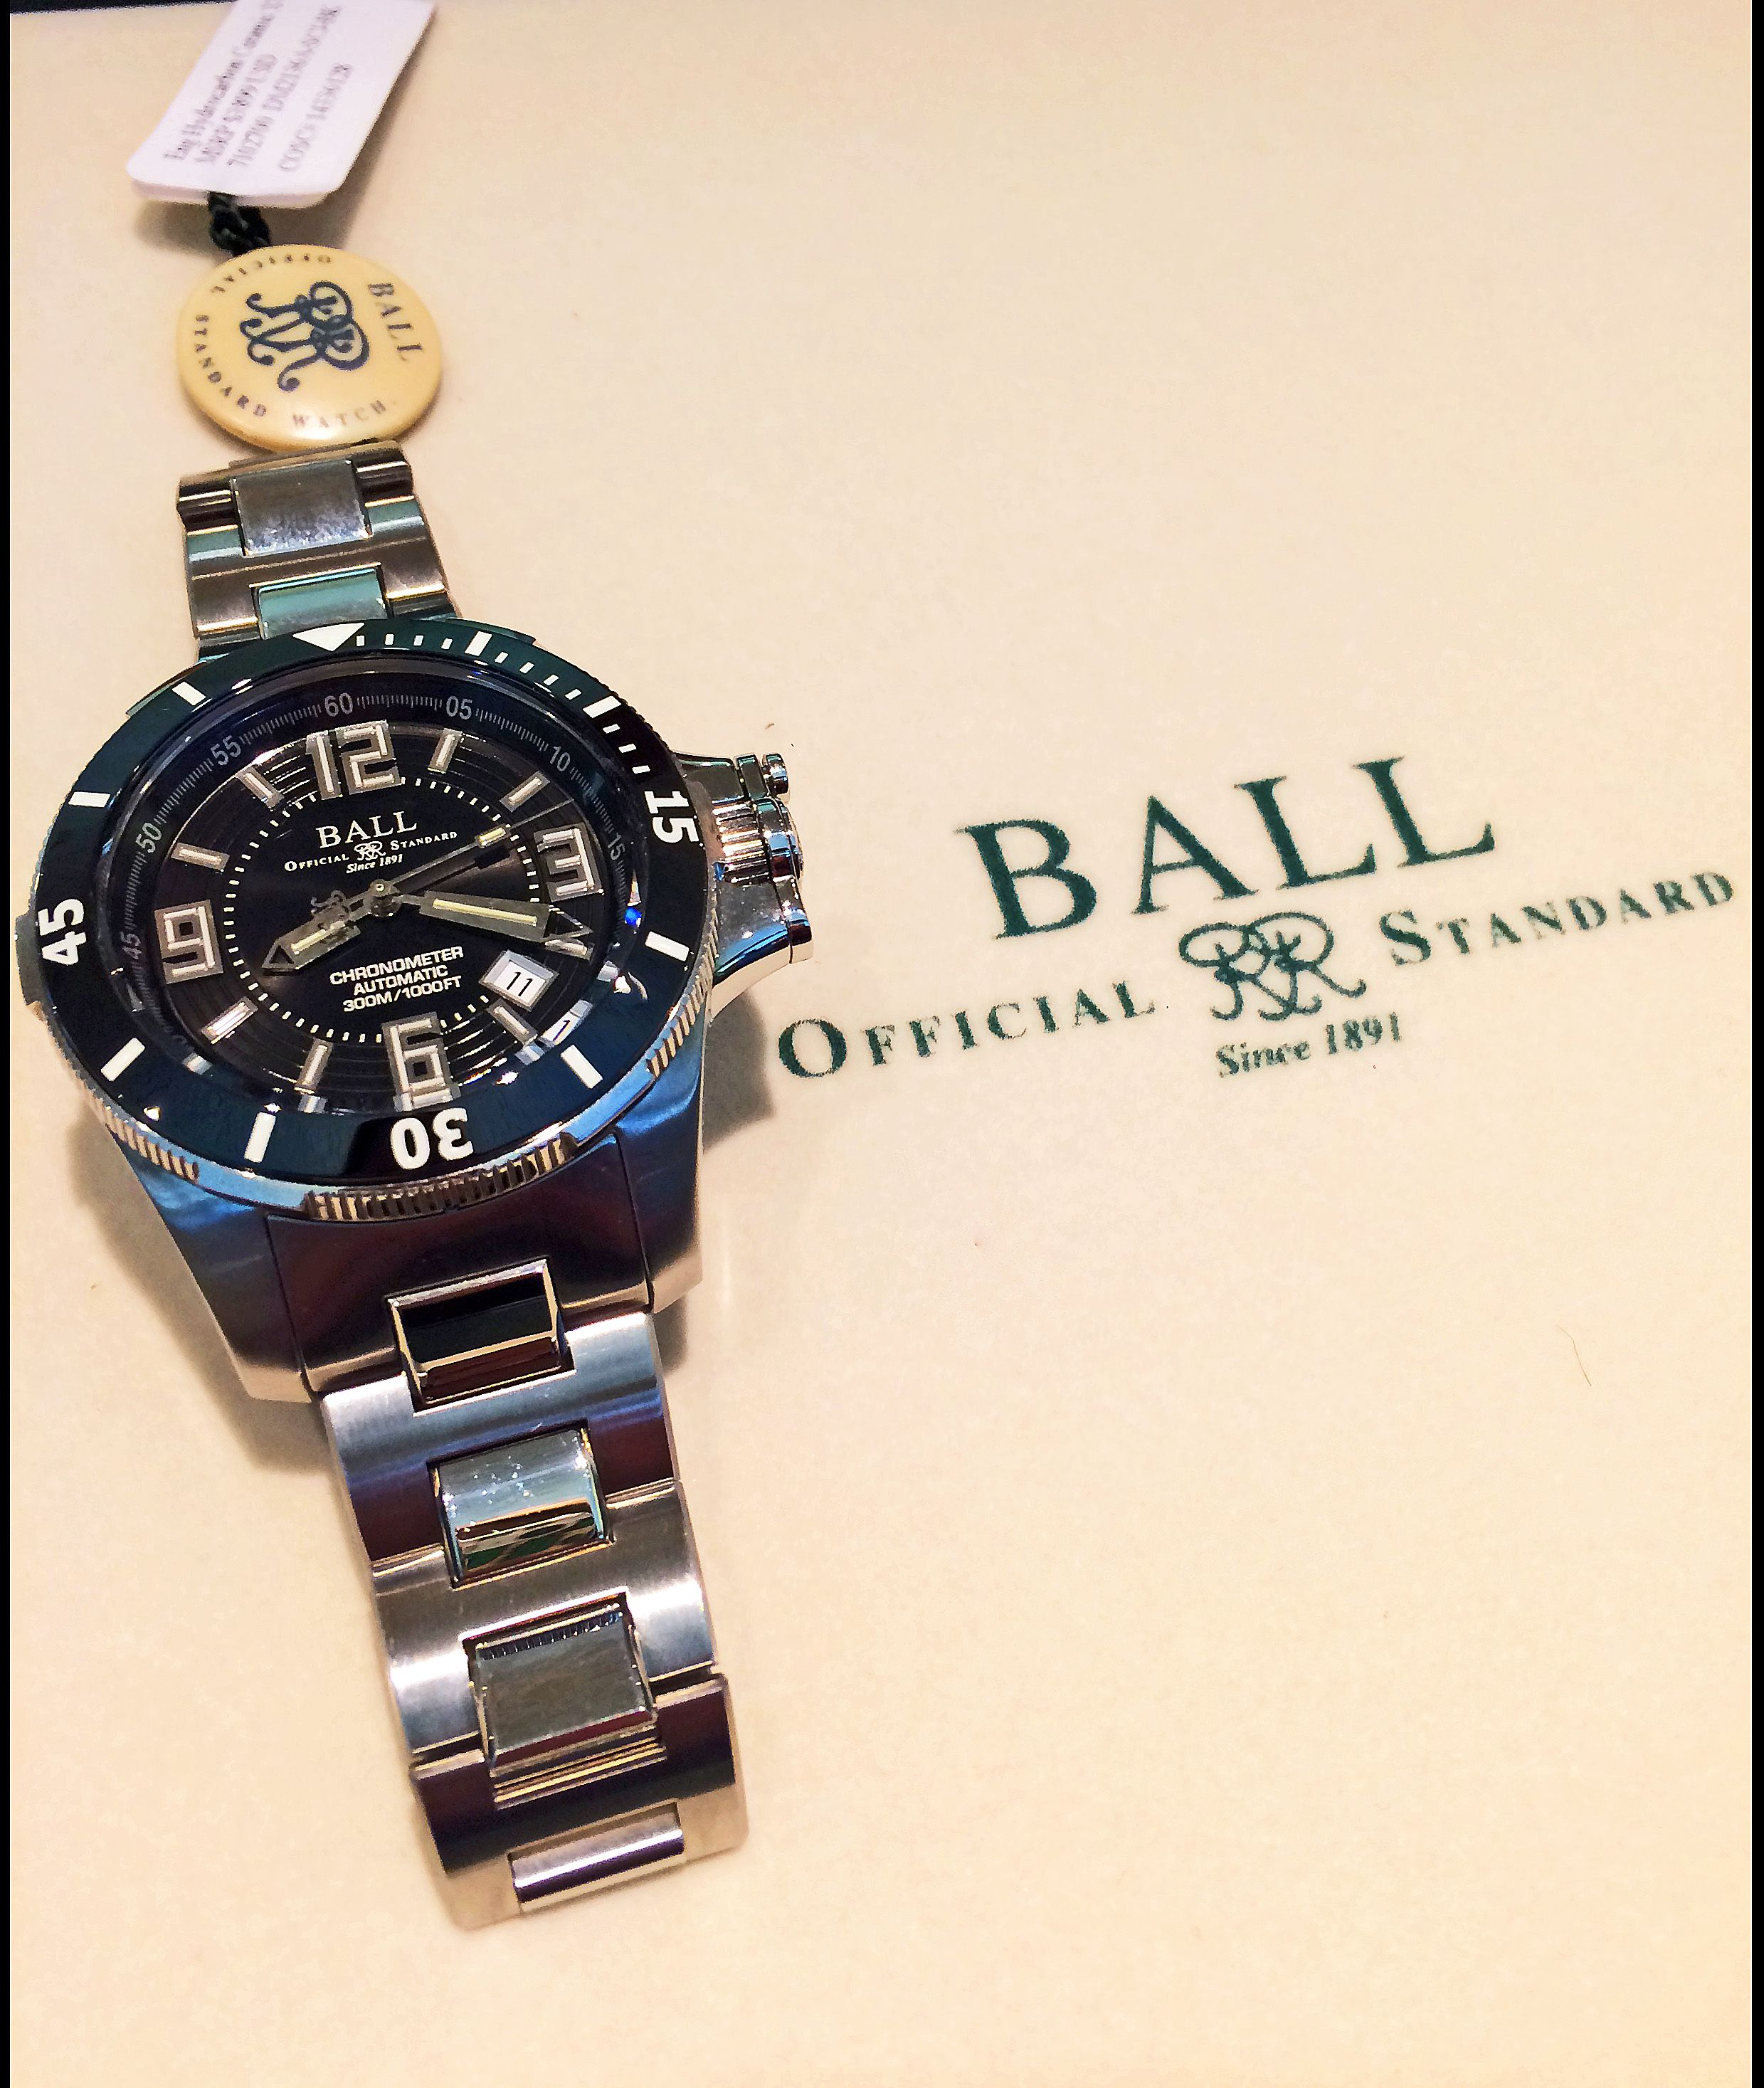 photo engineer watch ball ii watches master bkgr saj diver p luxury bmw